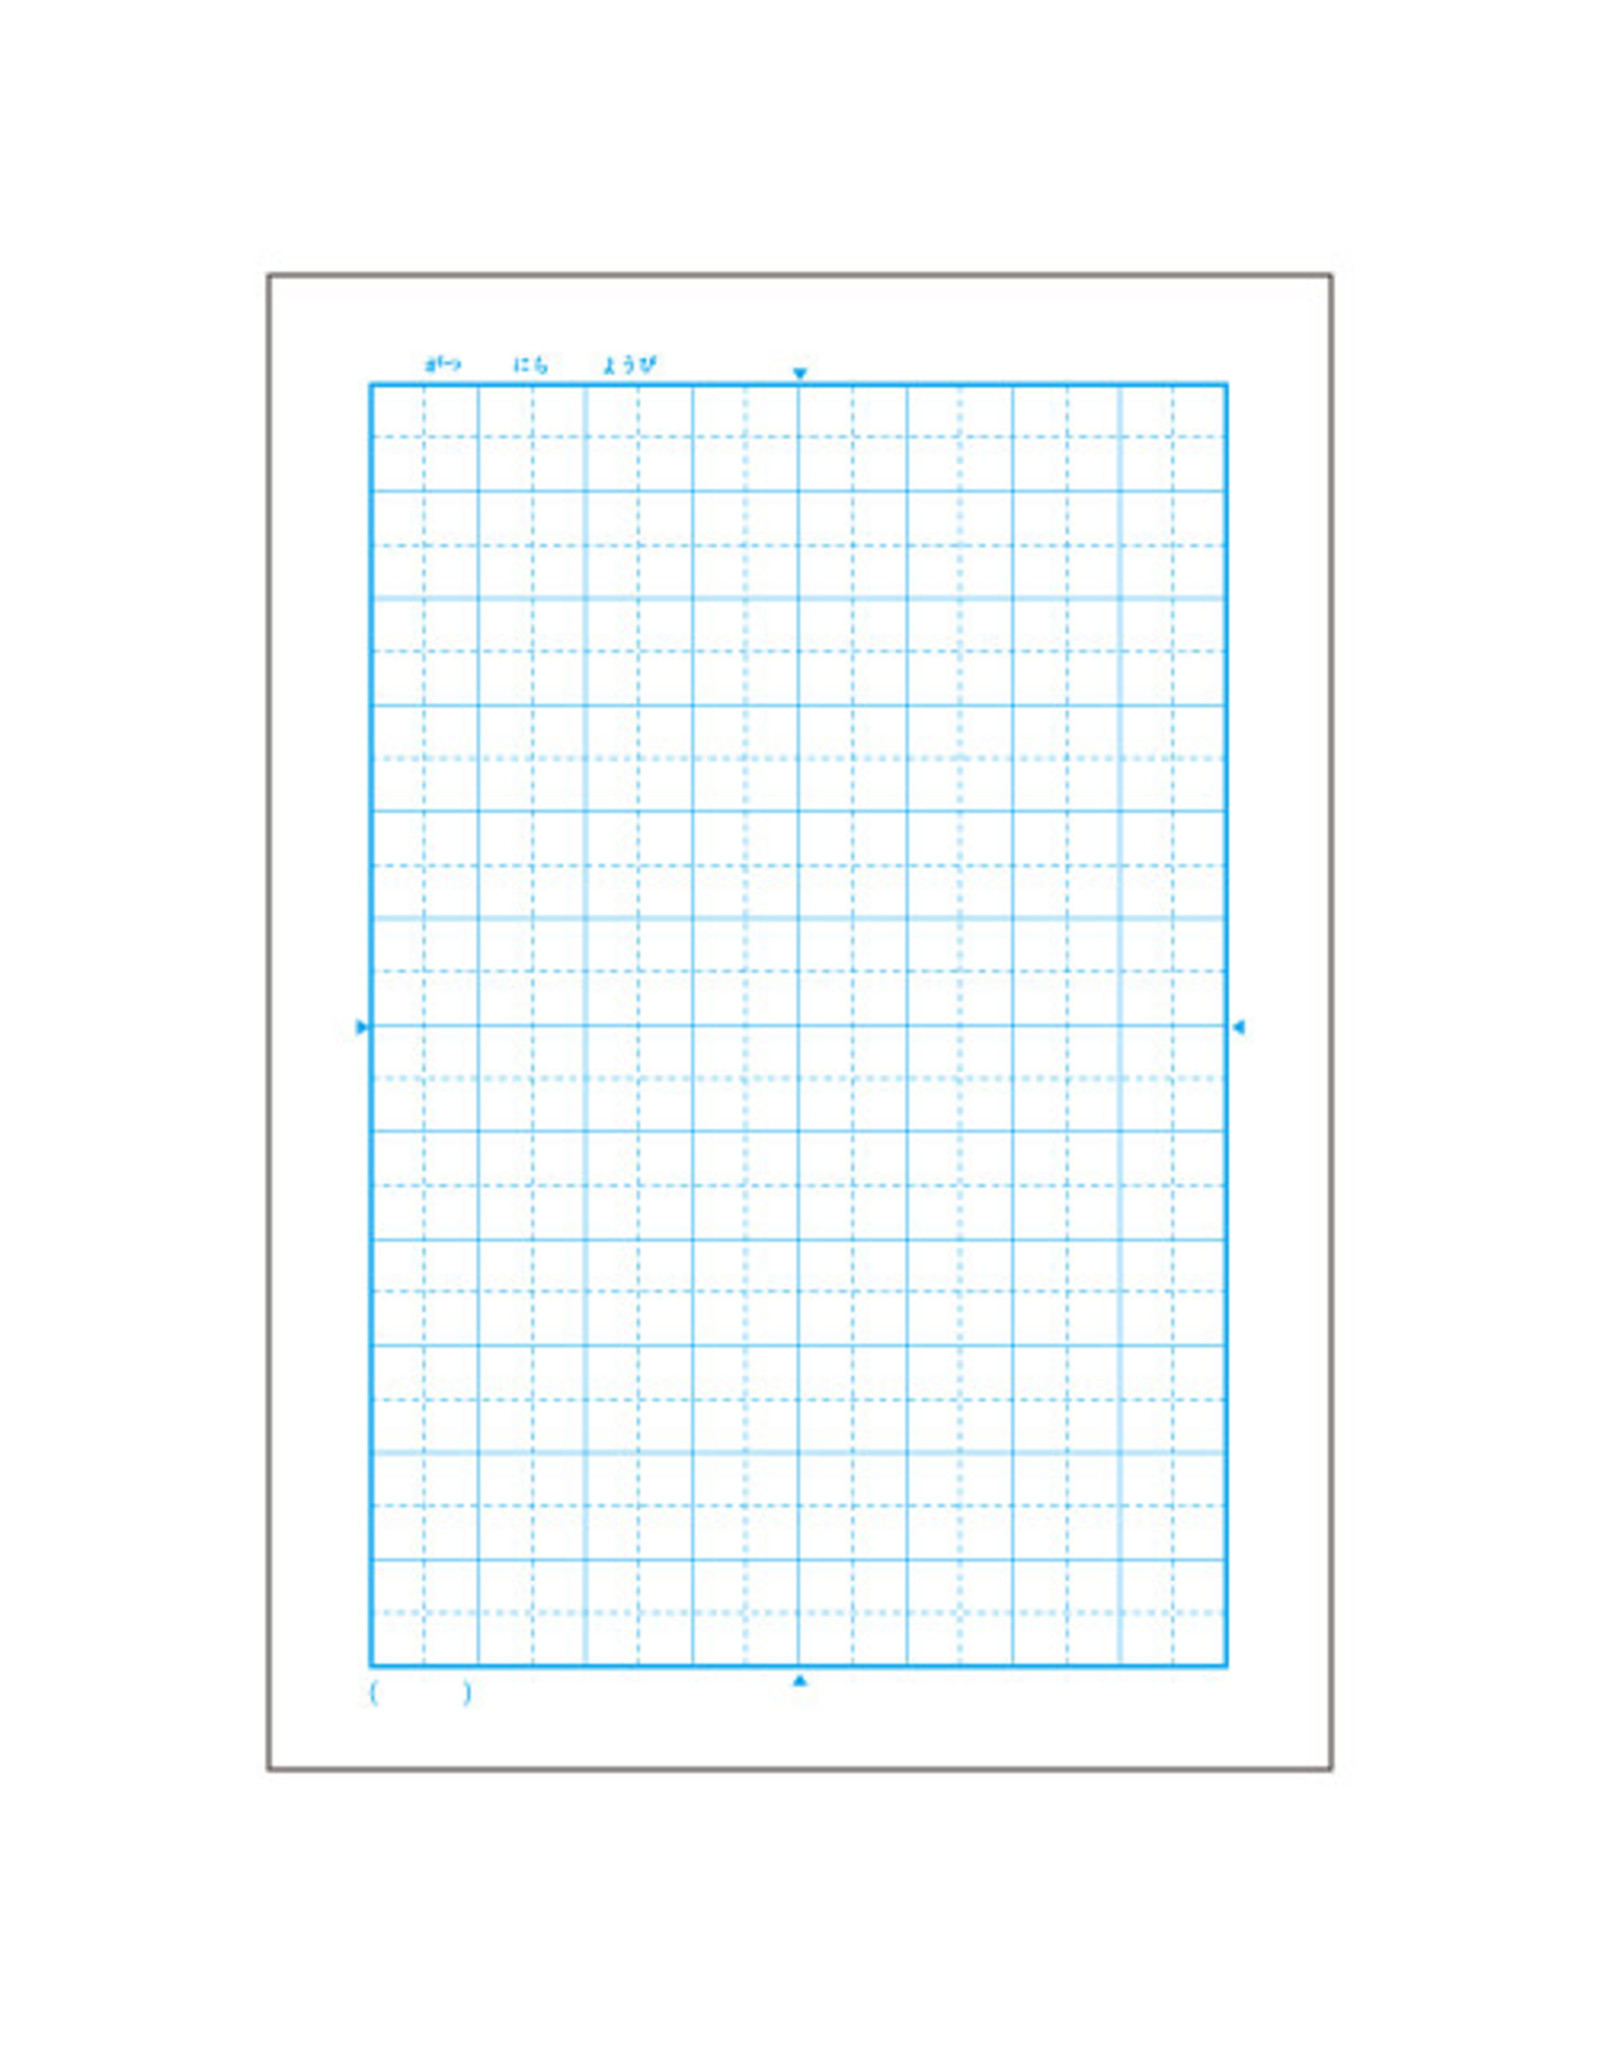 Kyokuto Associates co., ltd. COLLEGE ANIMAL KOKUGO 12 GRIDS